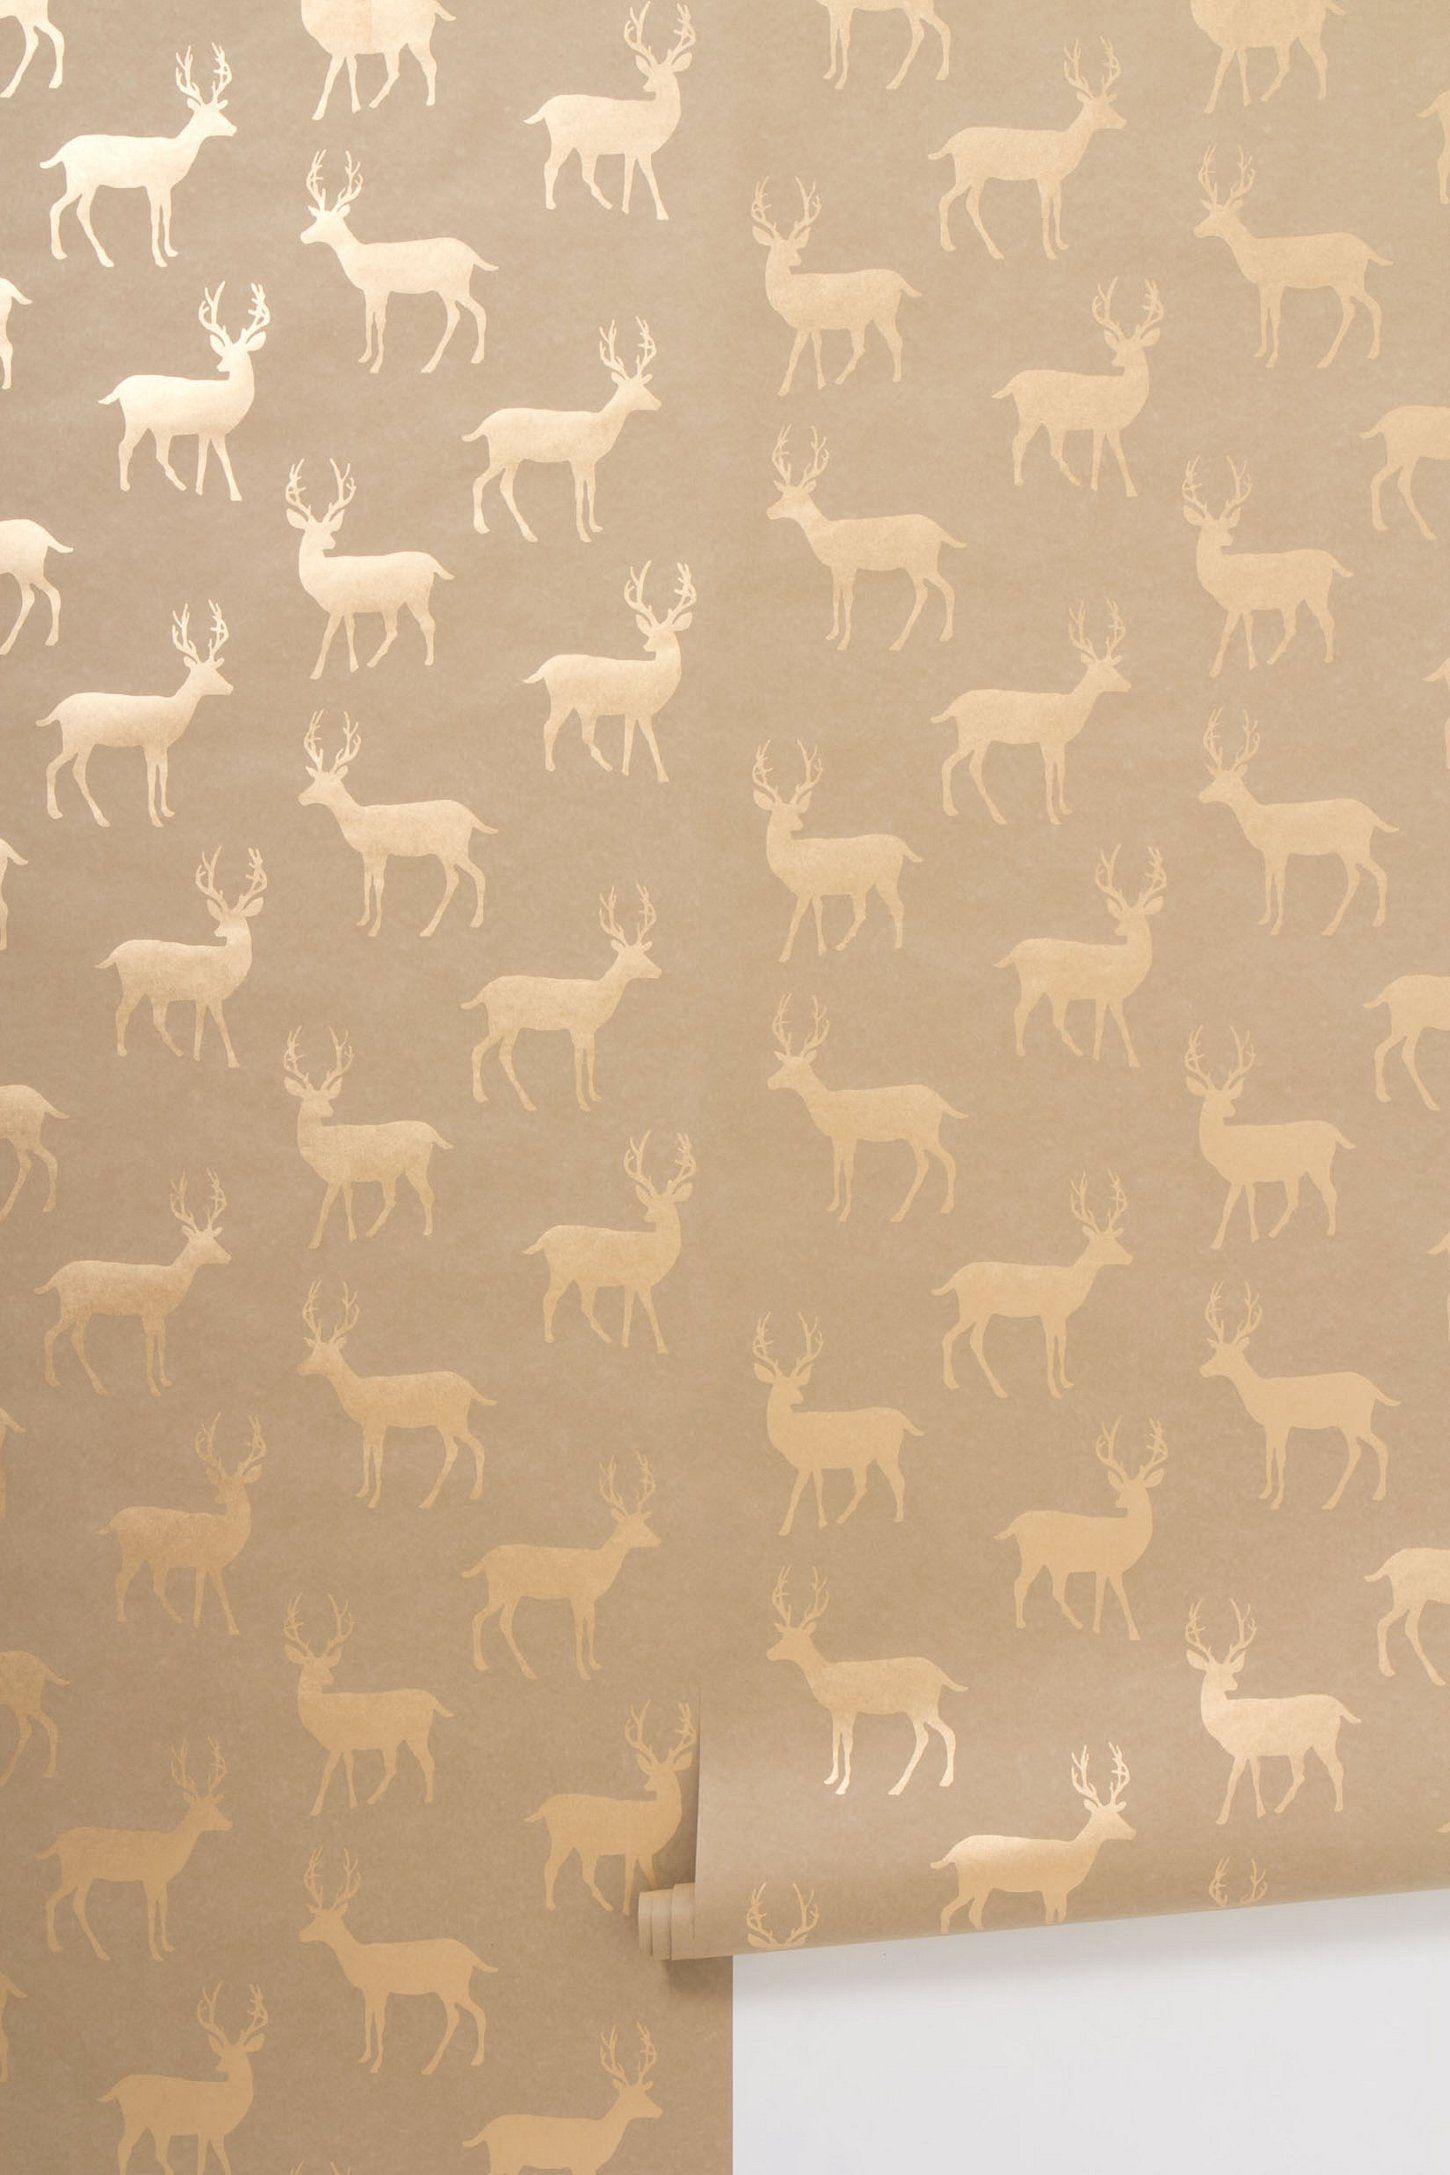 Metallic Stag Wallpaper - Anthropologie.com  I want this so bad, but at 198 for stamps on kraft paper wondering if i couldn;t do a diy.